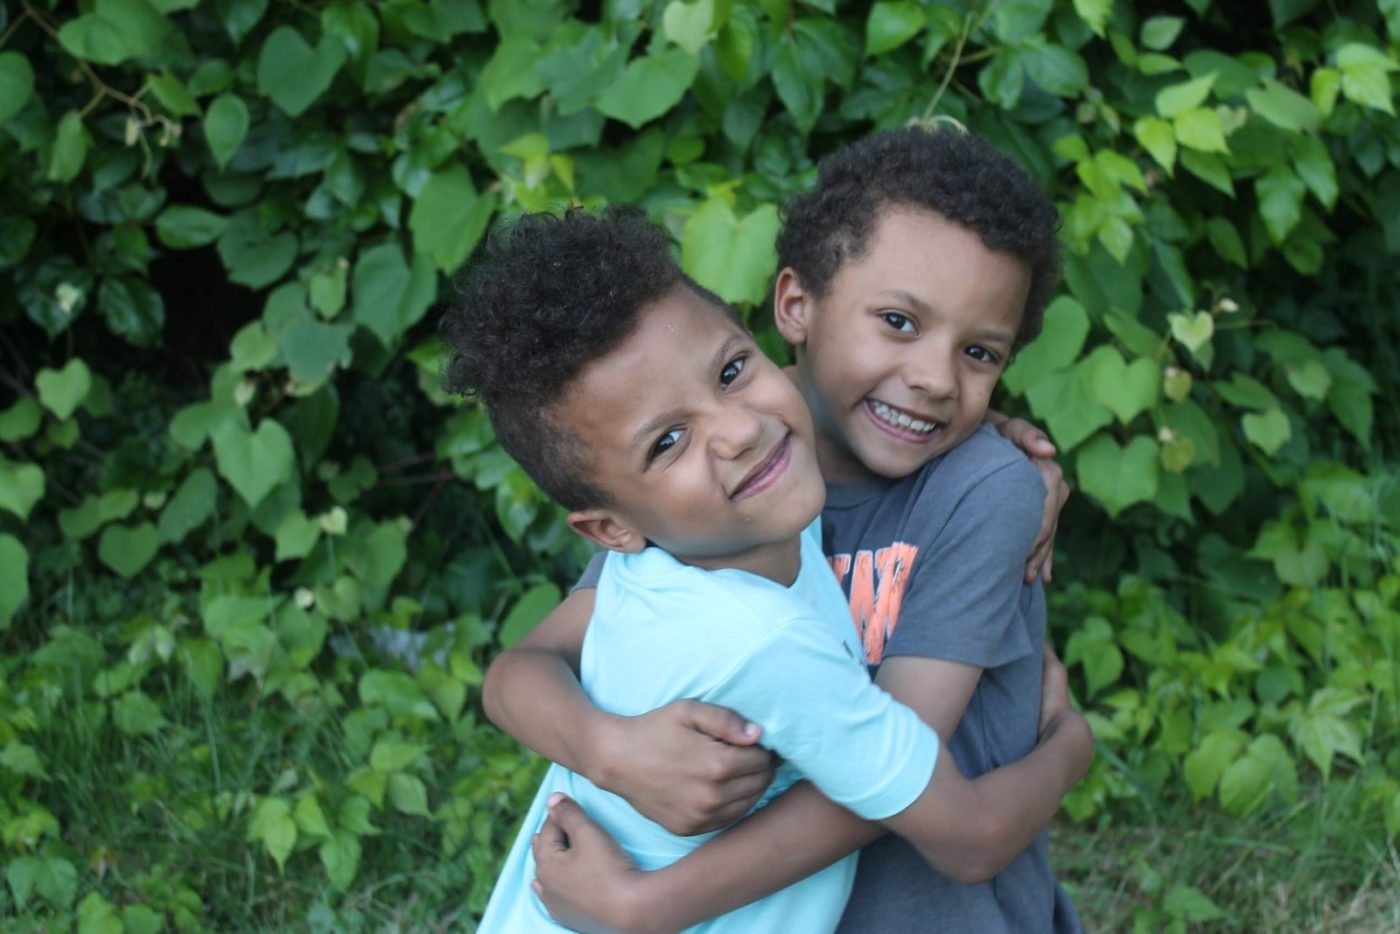 There are benefits to adopting siblings from foster care.